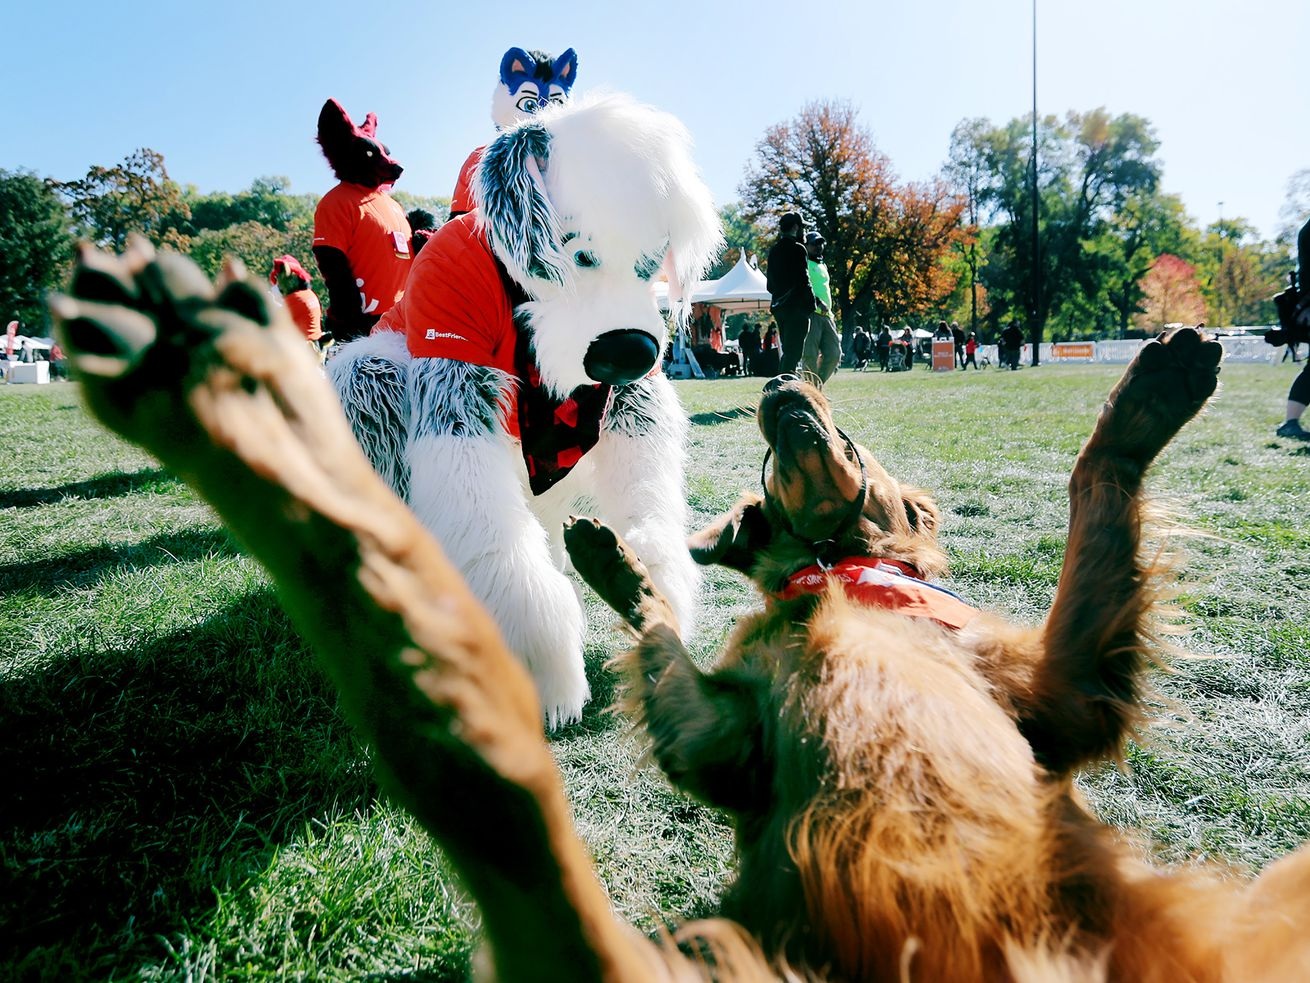 Photos: Who's a good dog? Utah pet owners strut their mutts during annual fundraising event in Salt Lake City